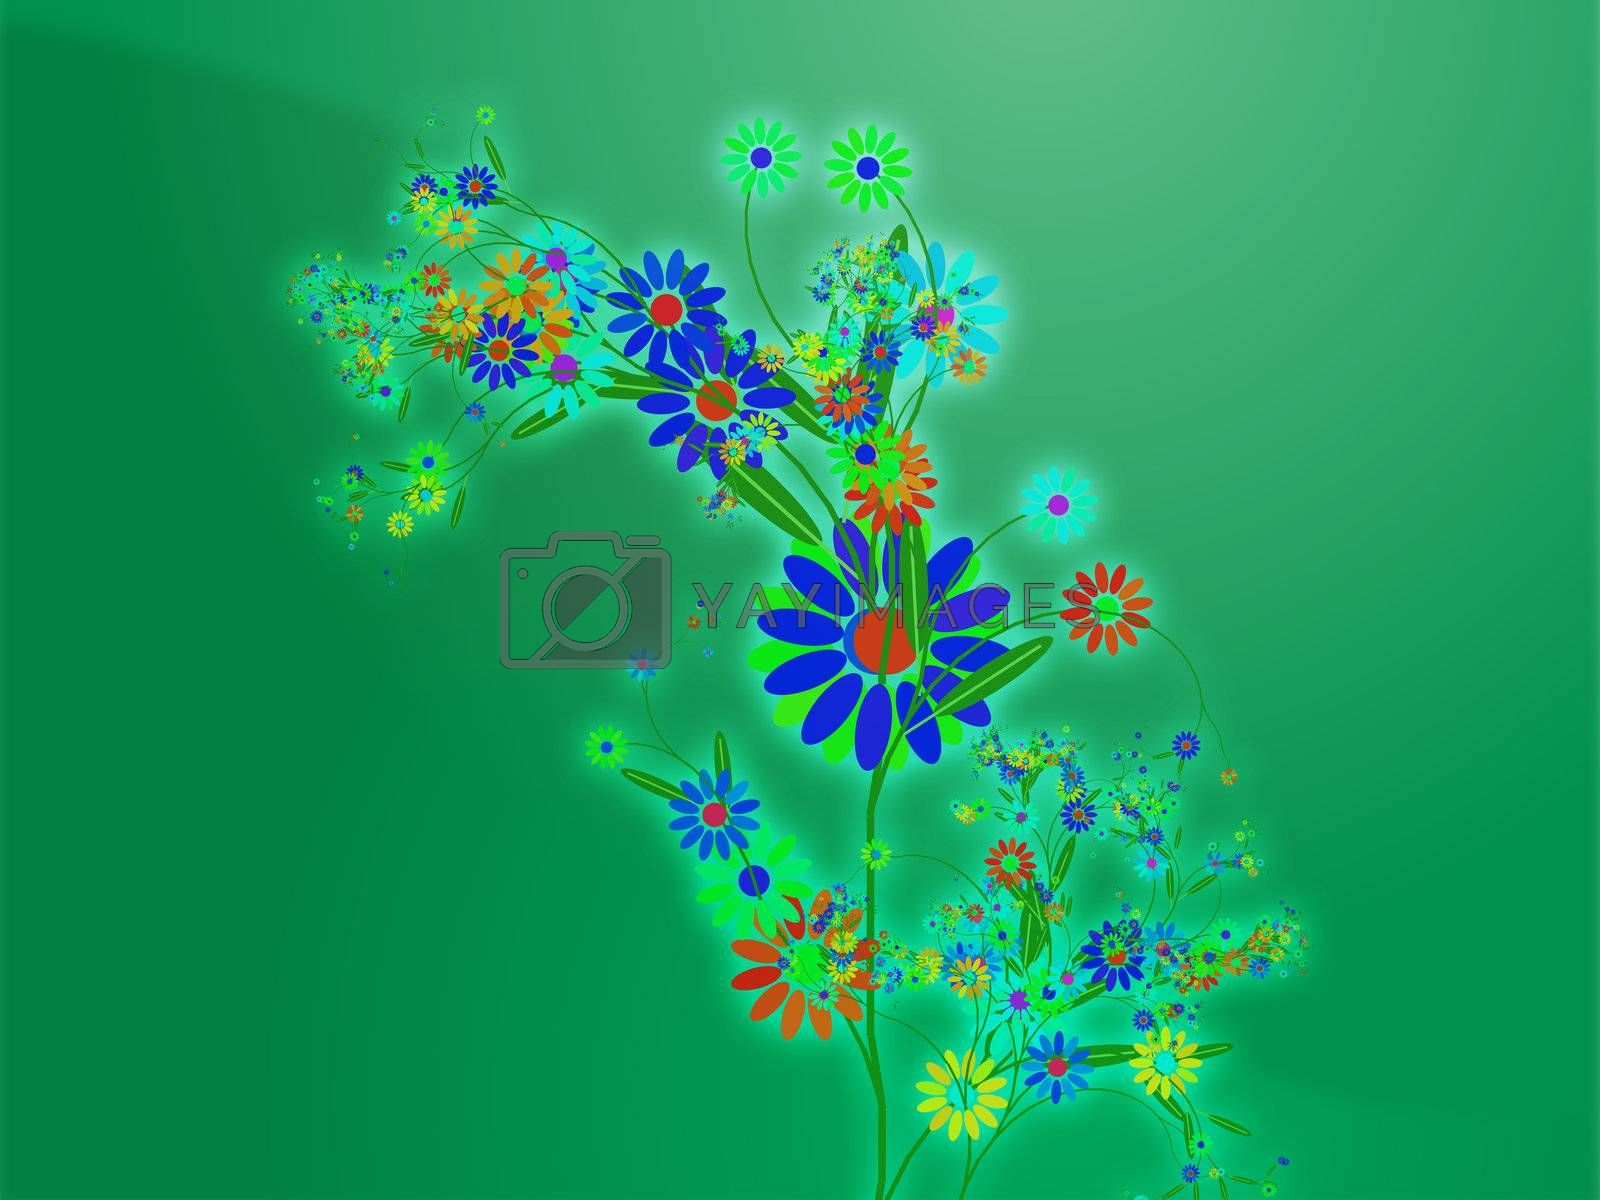 Royalty free image of Floral nature themed design illustration by kgtoh